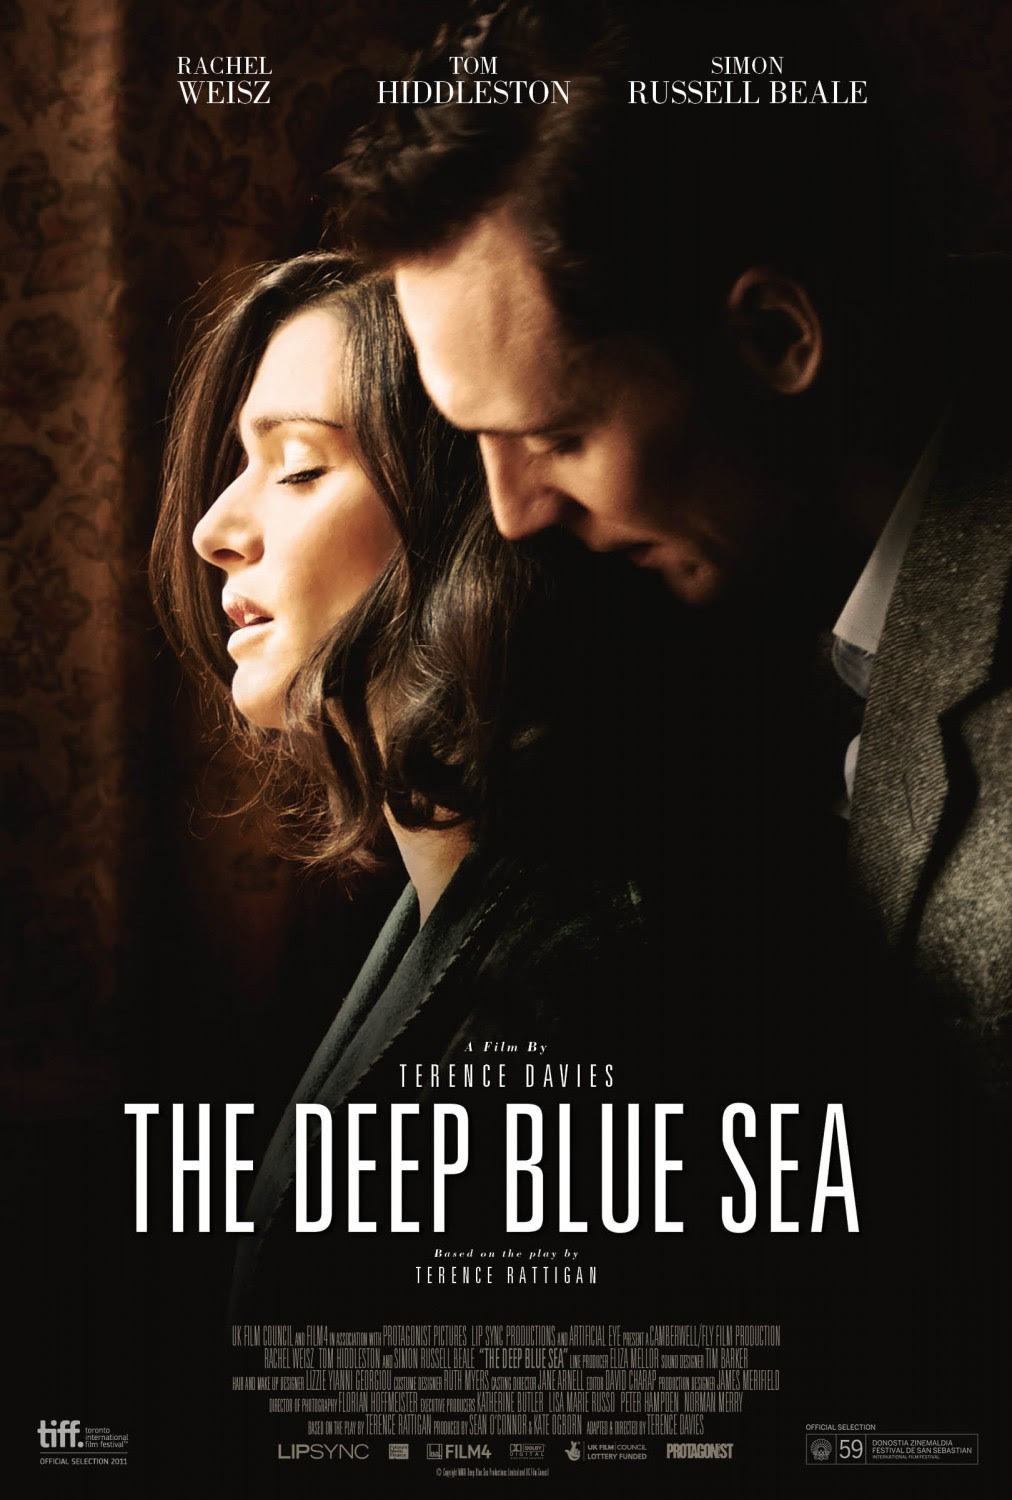 http://www.impawards.com/2011/posters/deep_blue_sea_xlg.jpg